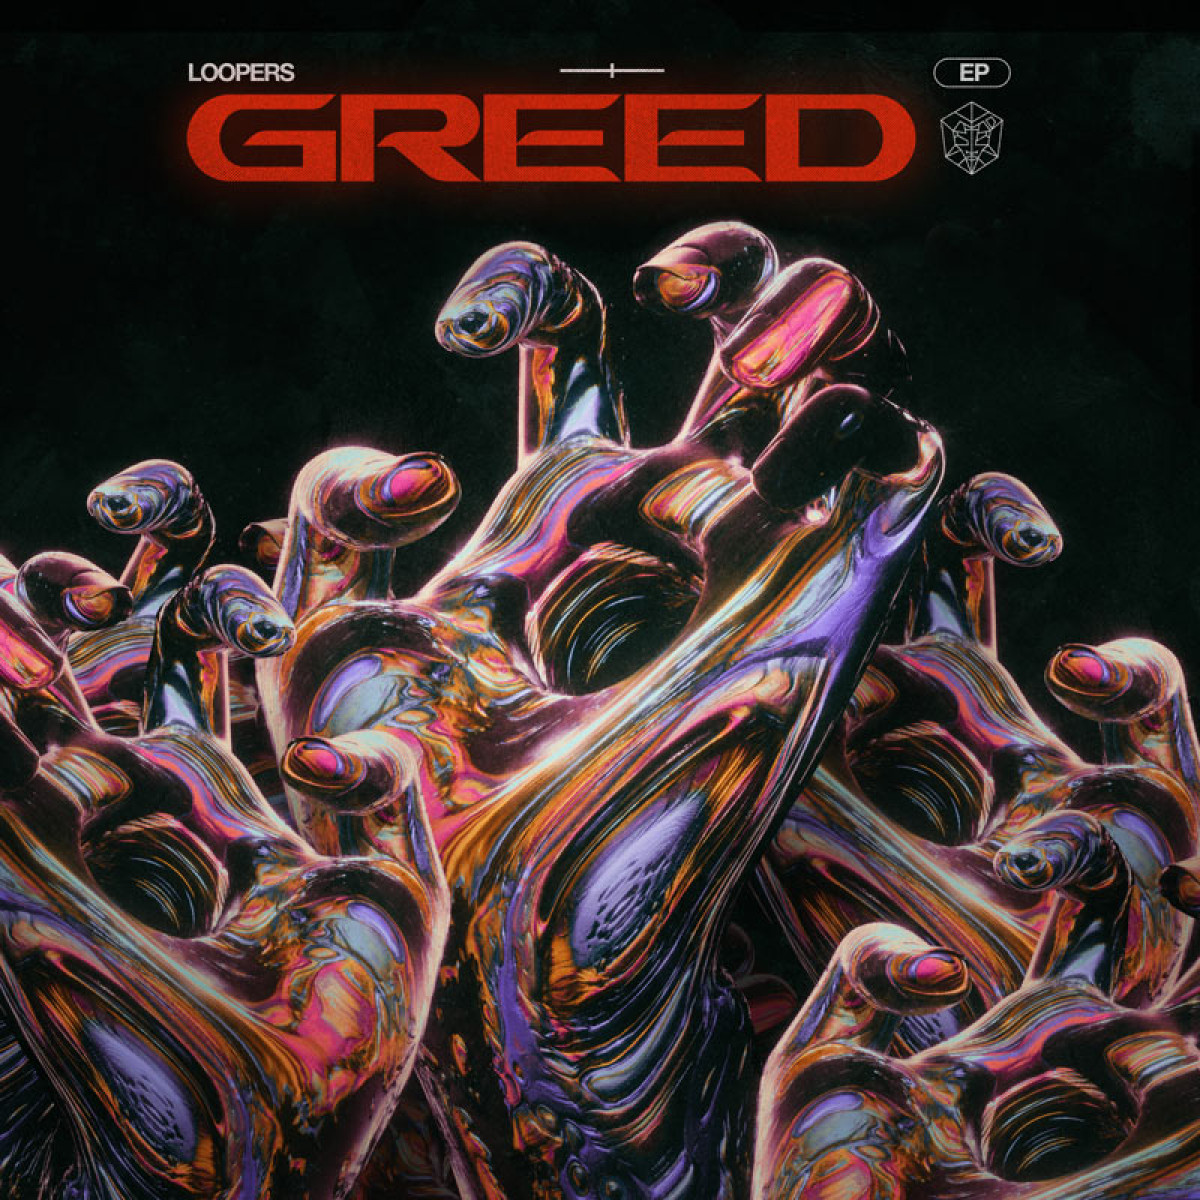 Cover LOOPERS - GREED (EP)